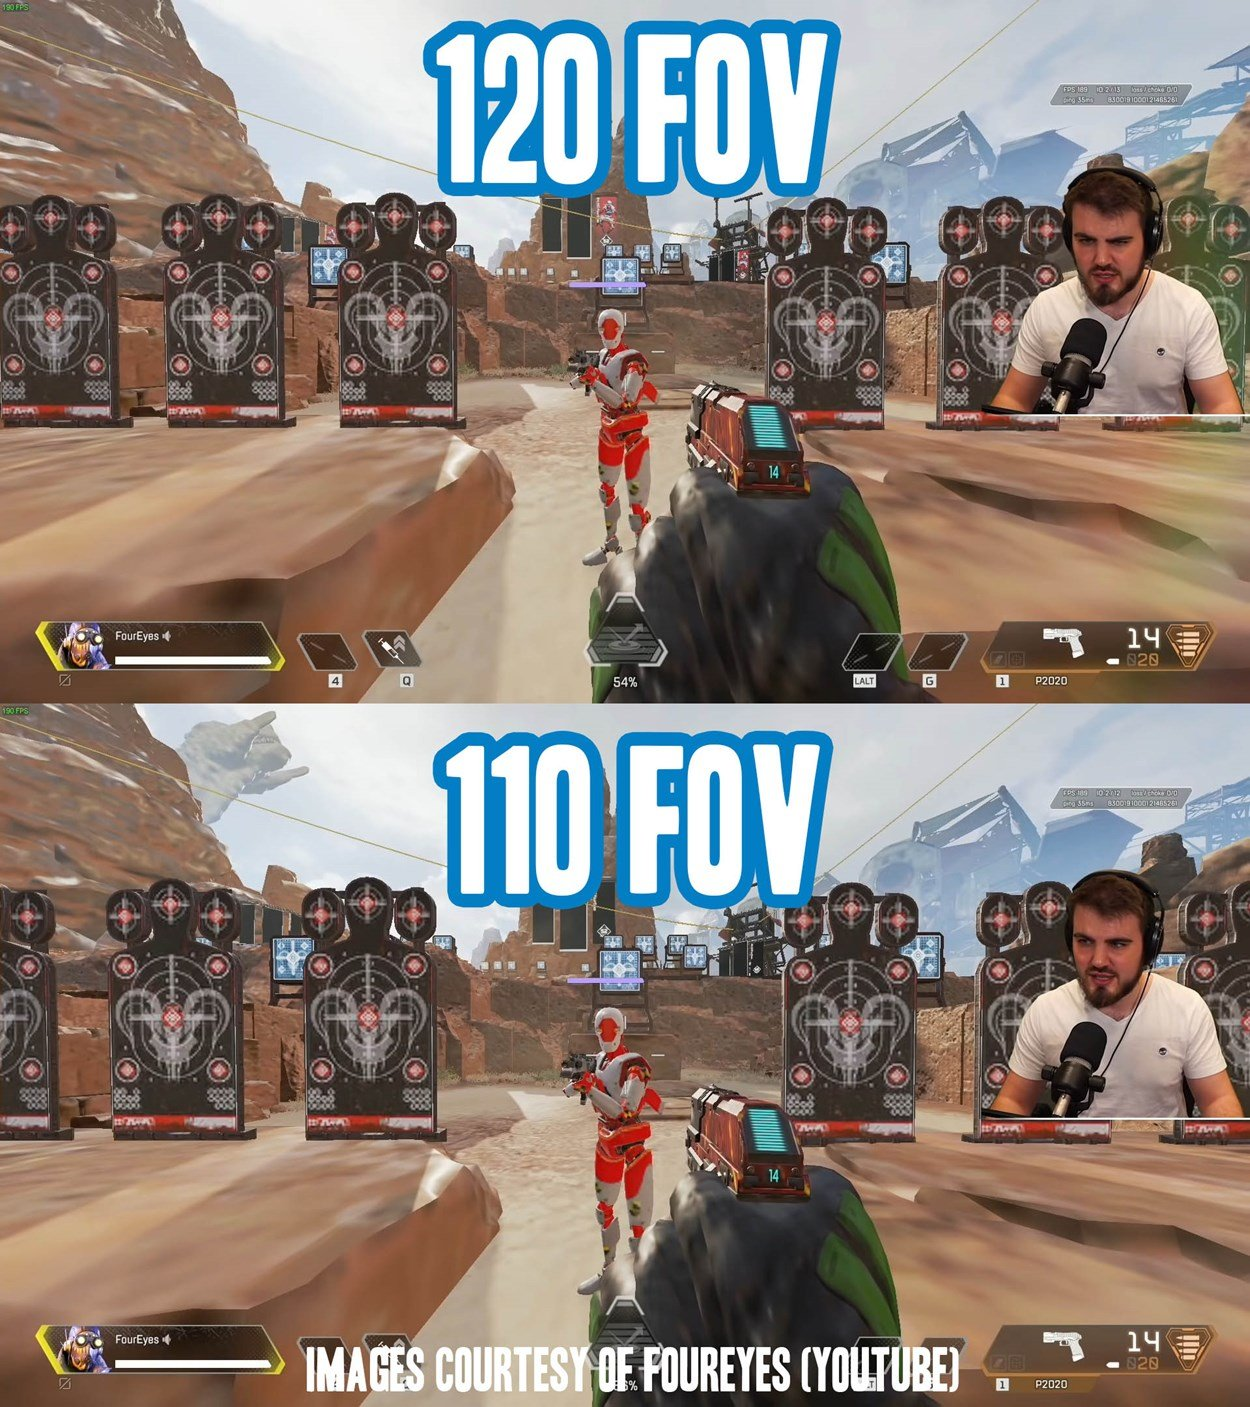 Demonstration of the amount of area you can see around you based on your FOV setting